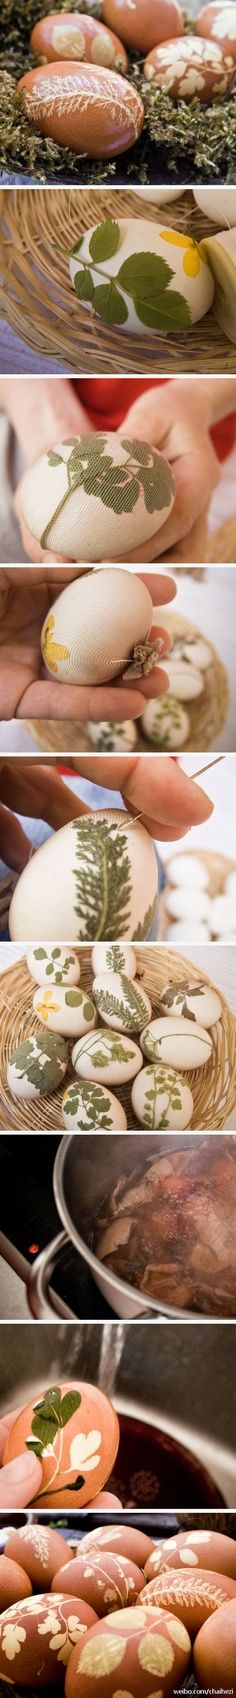 Eggs-natural. No dyes needed. - Inspiring picture on Joyzz.com